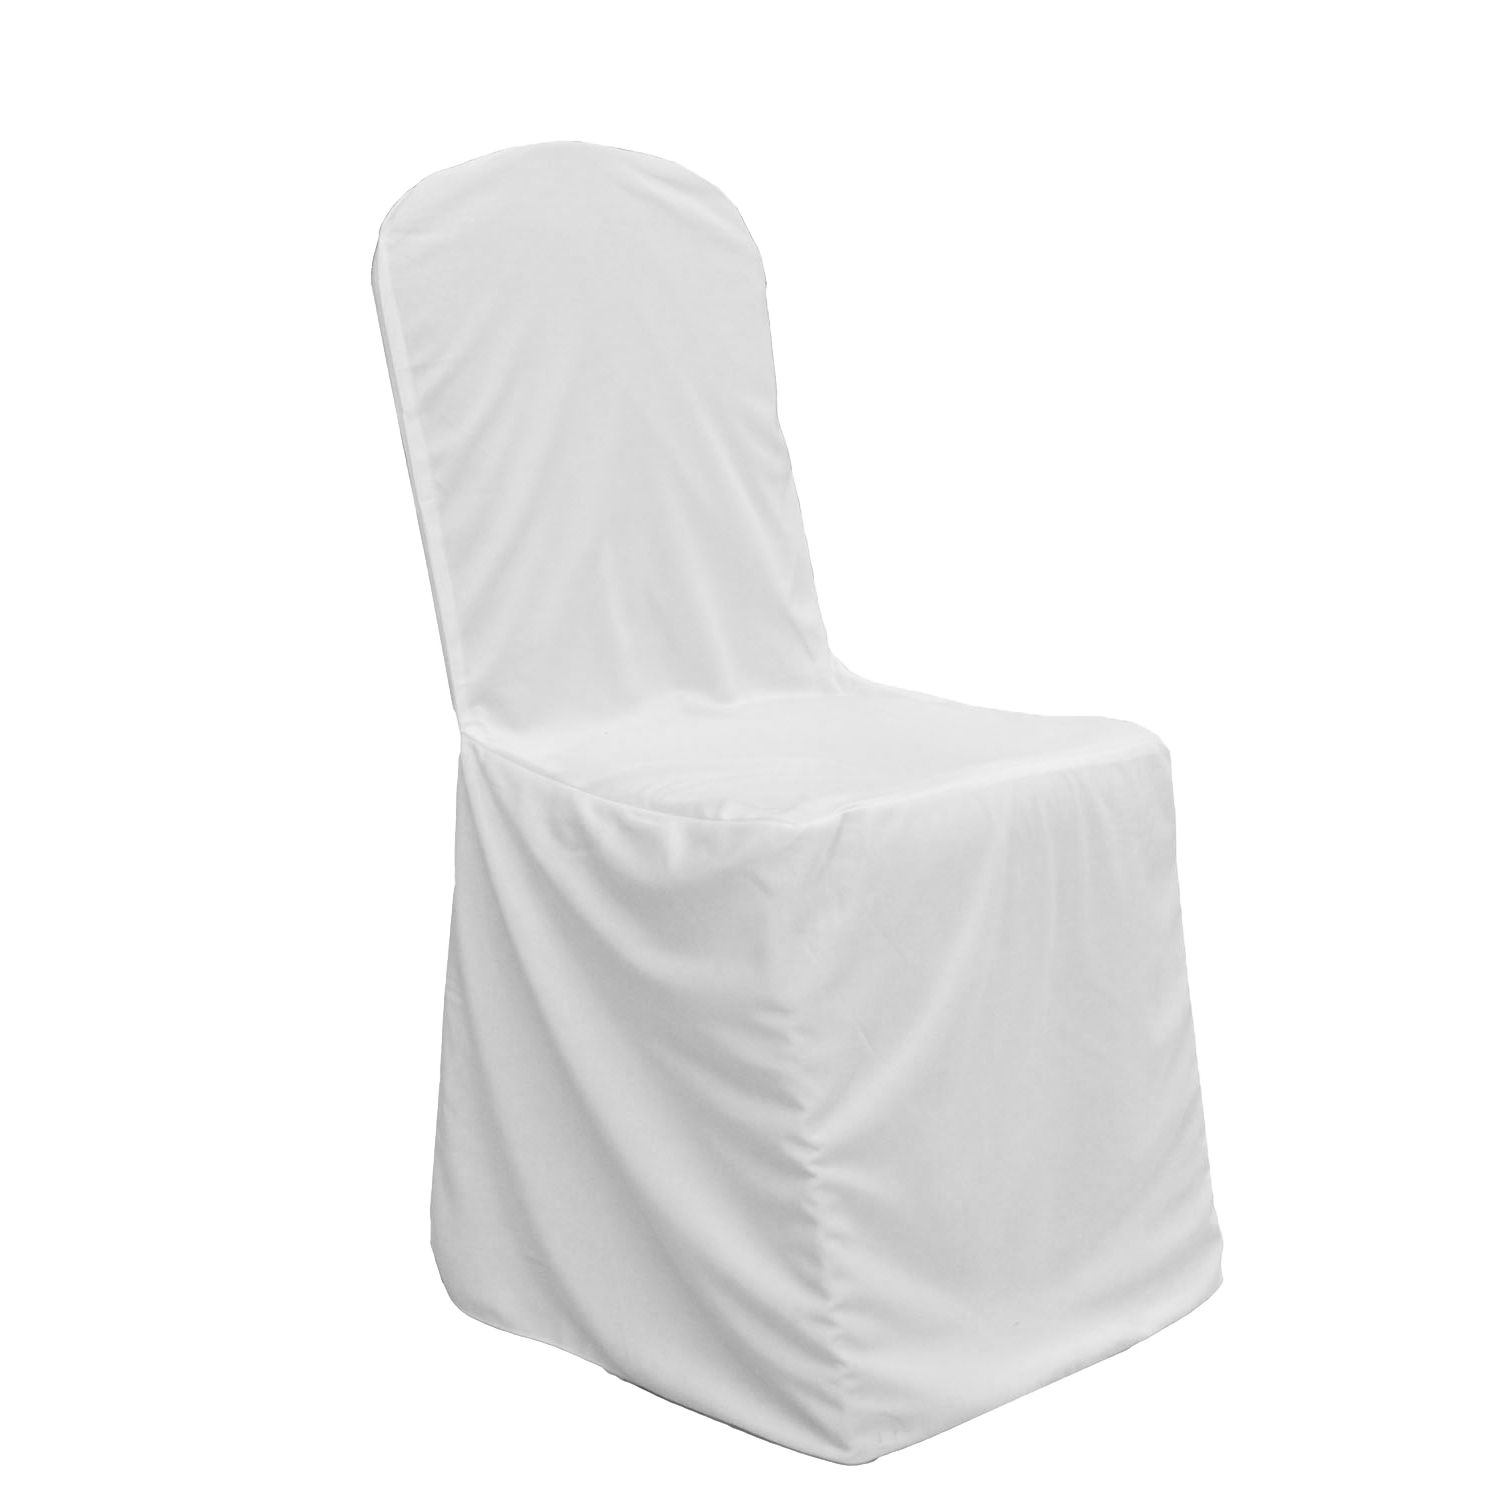 stretch chair covers stool with fabric scuba banquet cover white at cv linens